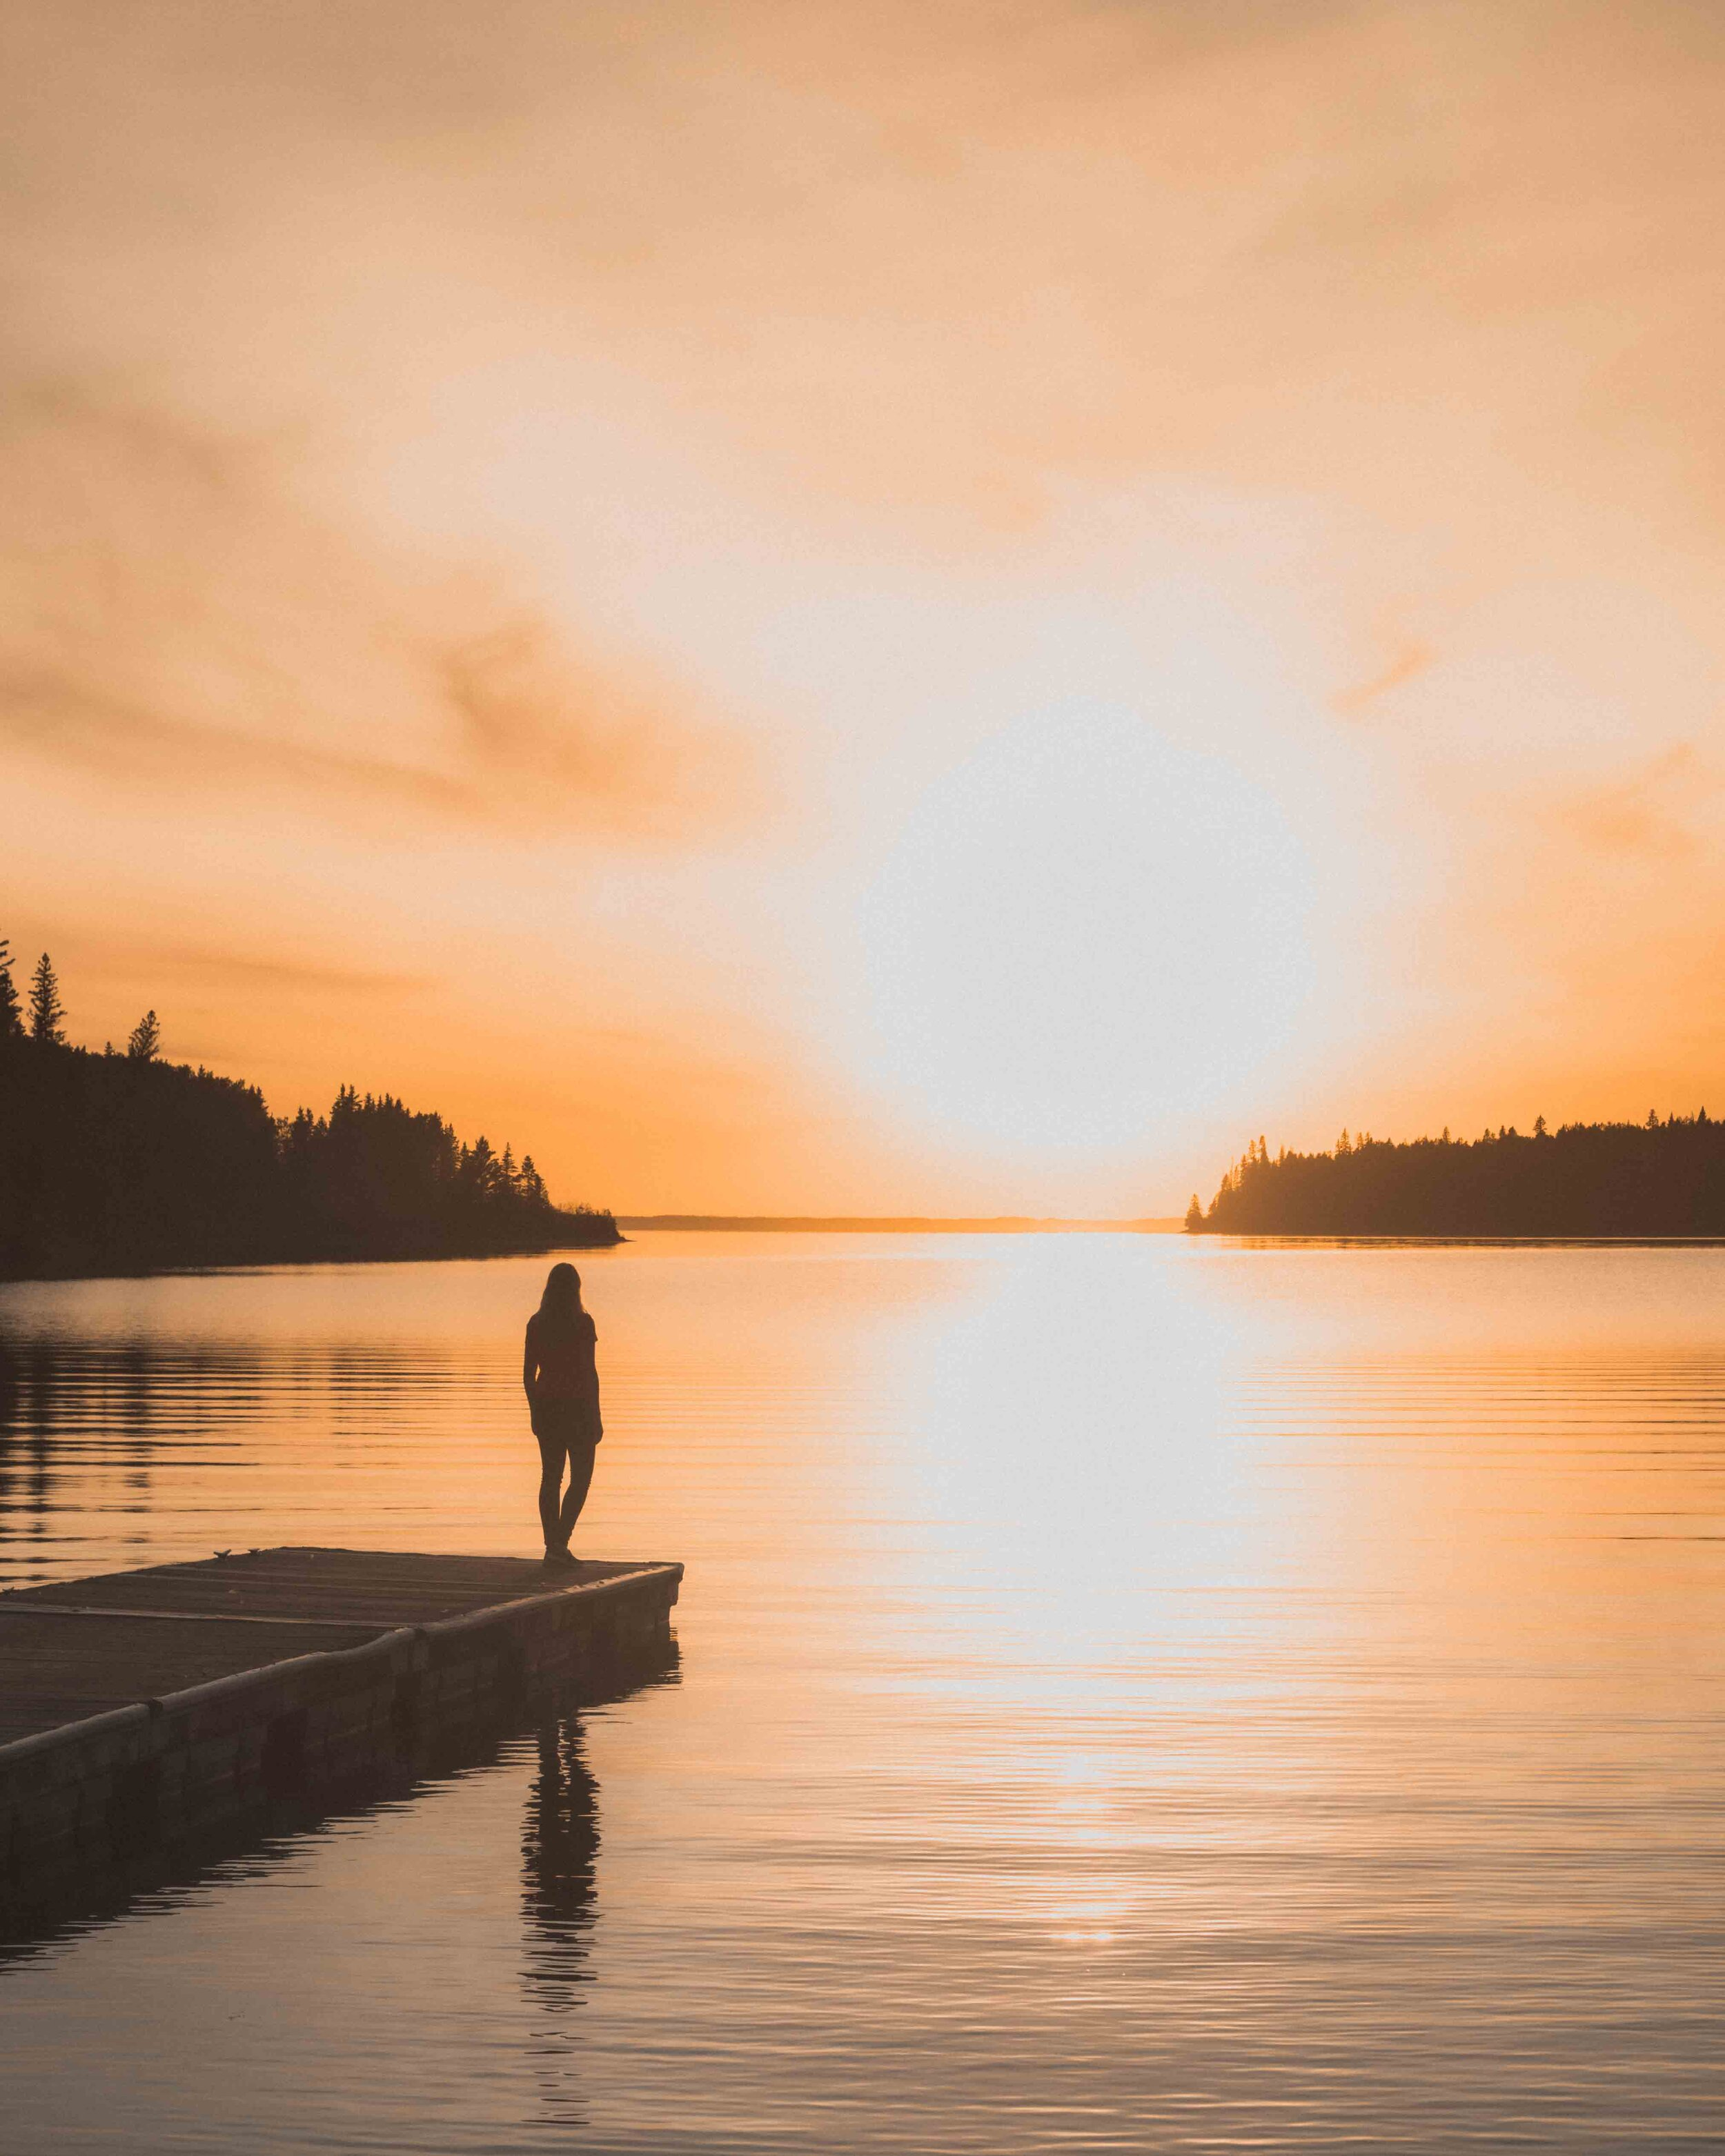 Sunset at Clear Lake - Activities in Riding National Park